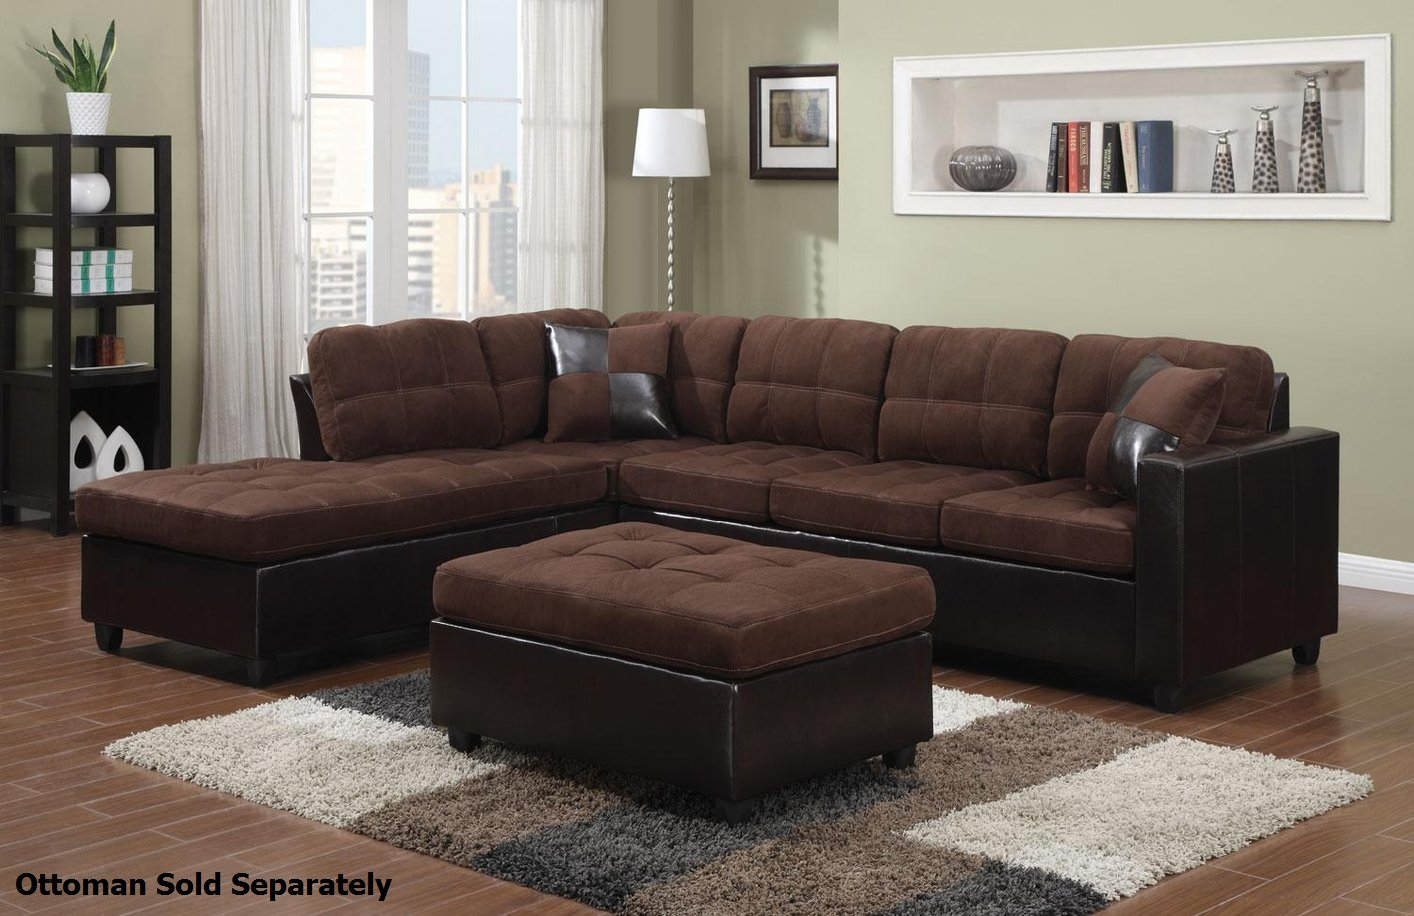 Coaster Mallory 505655 Brown Fabric Sectional Sofa Steal